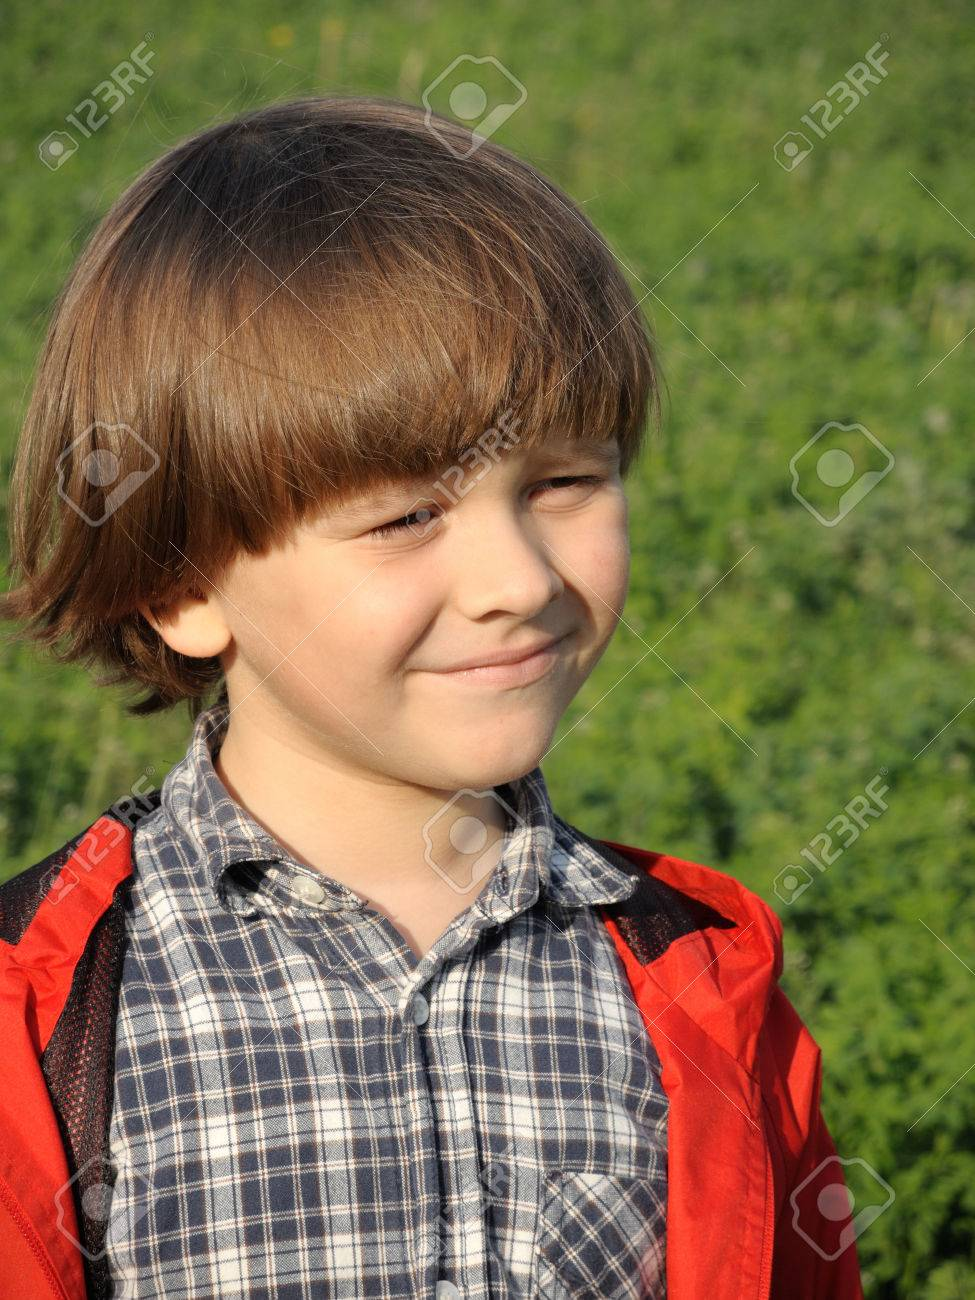 Portrait of a smiling young boy on the nature. Happiness, fashionable concept. Lifestyle. - 43075953